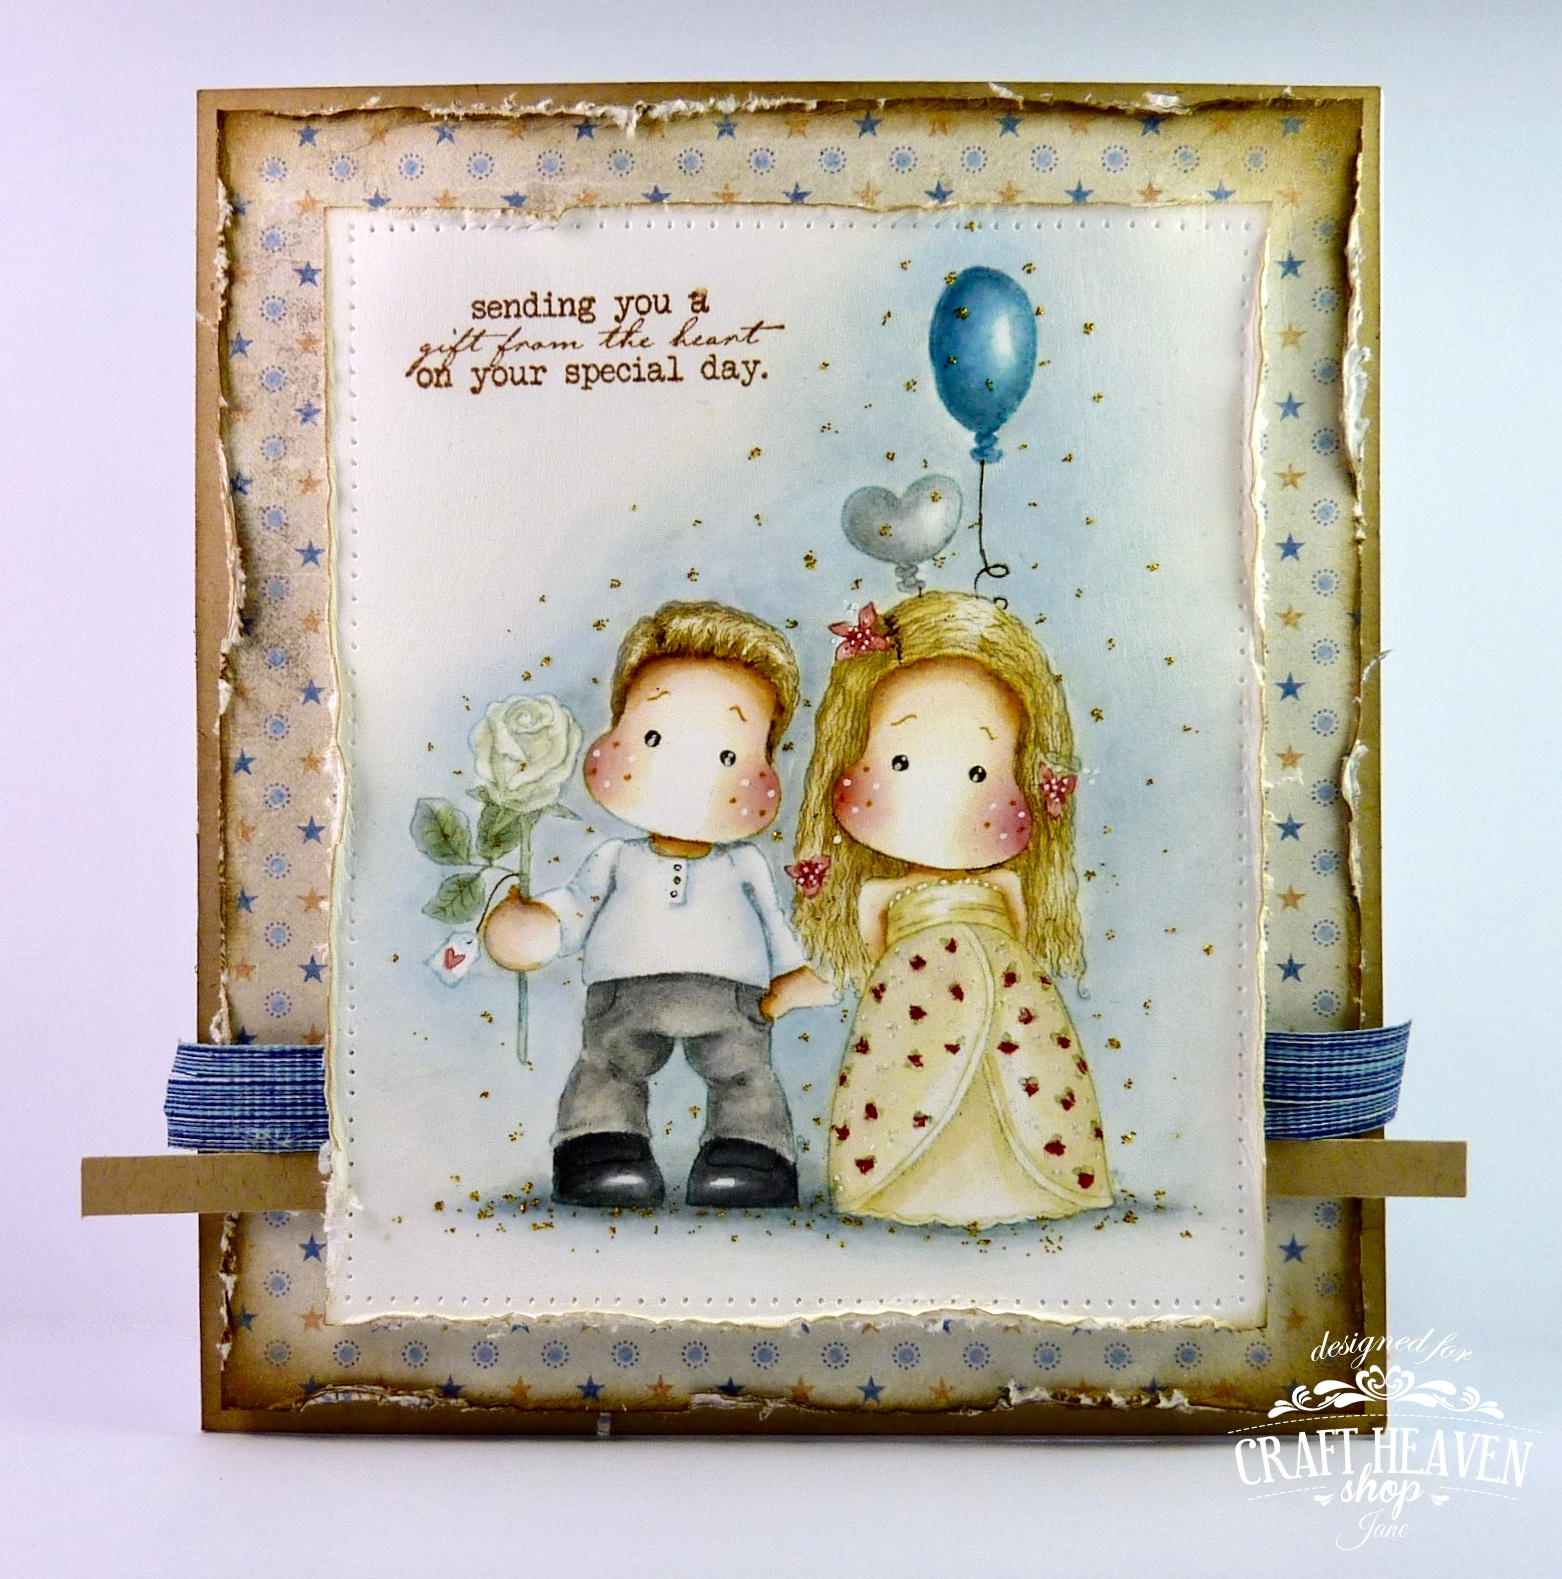 Janes Lovely Cards Craft Heaven DT